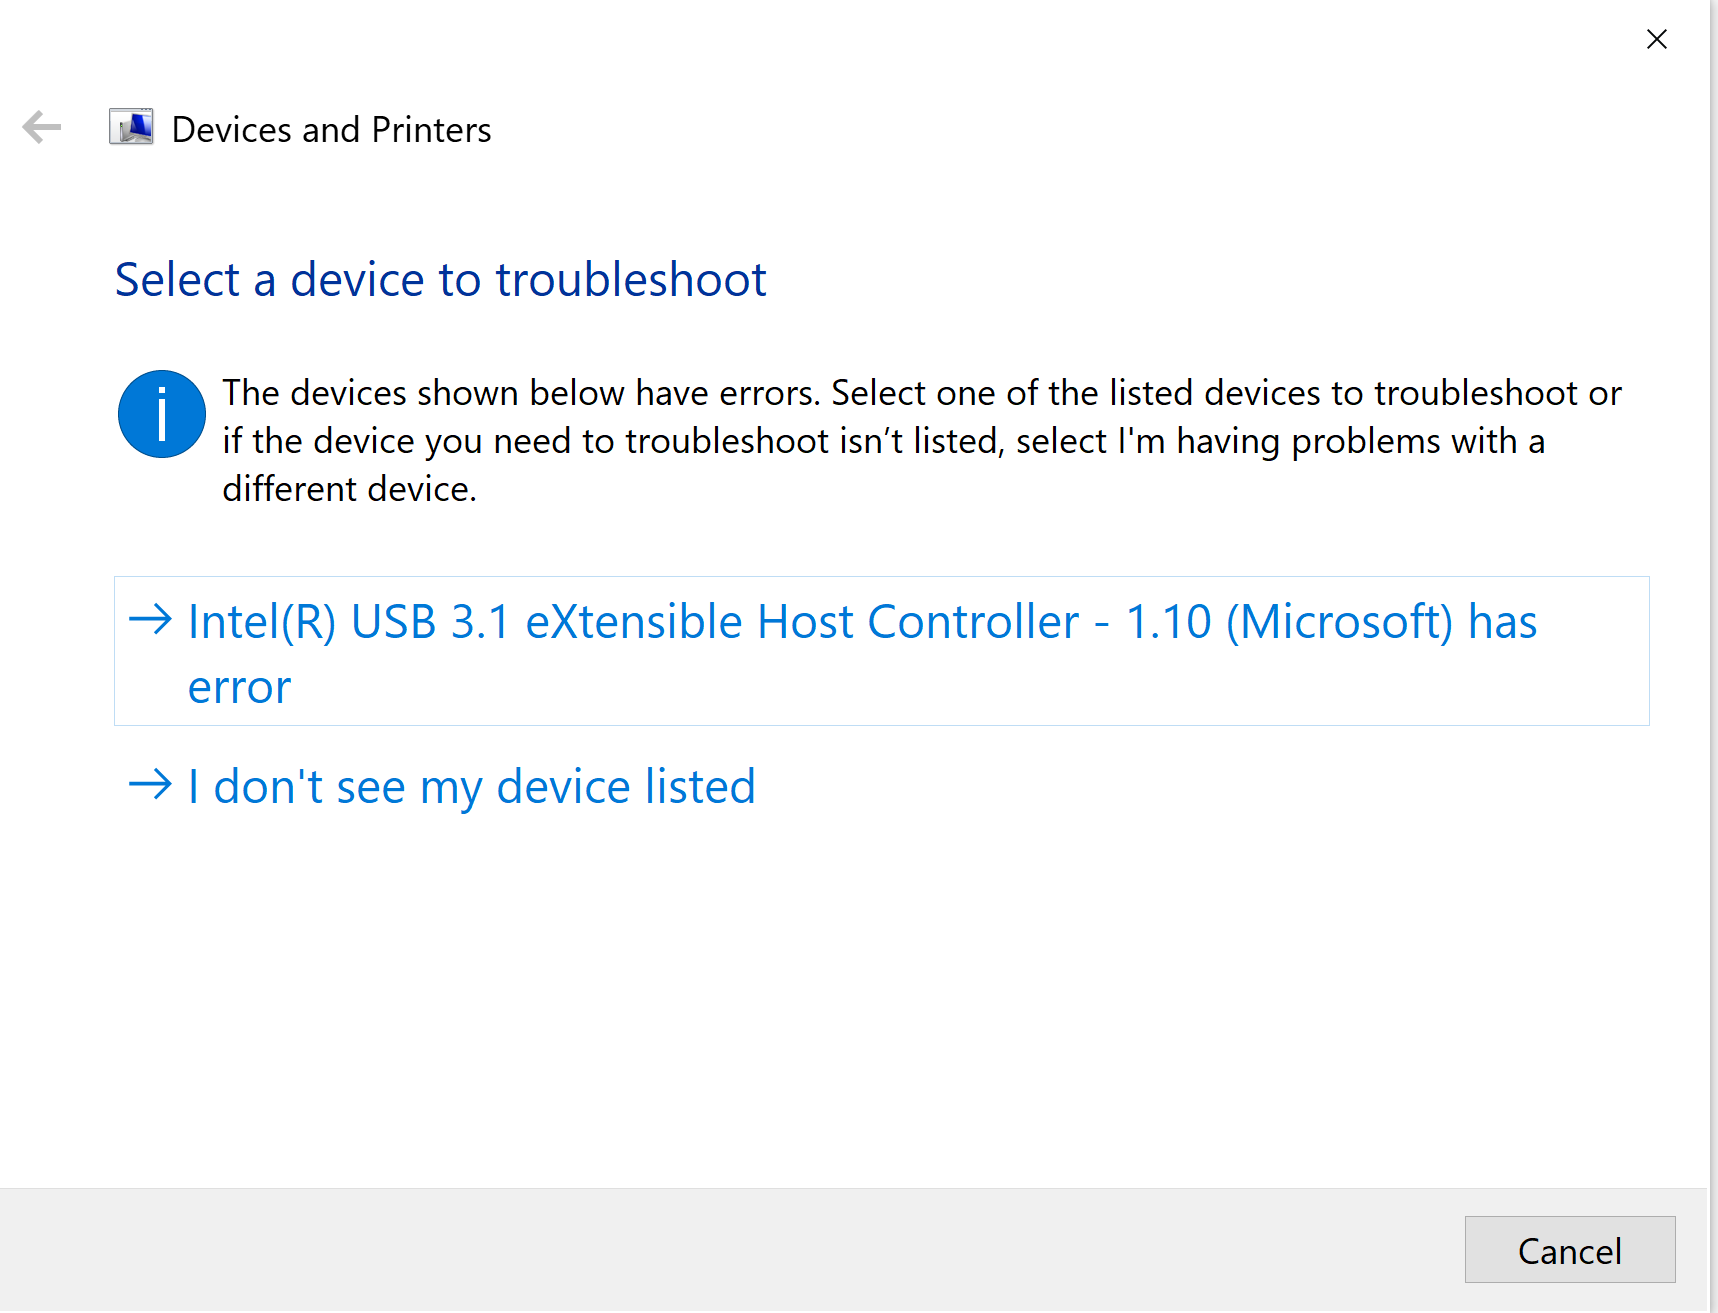 HELP! USB DEVICES NOT SHOWING UP! 8f18f441-54da-476e-bbef-180b95c600ea?upload=true.png